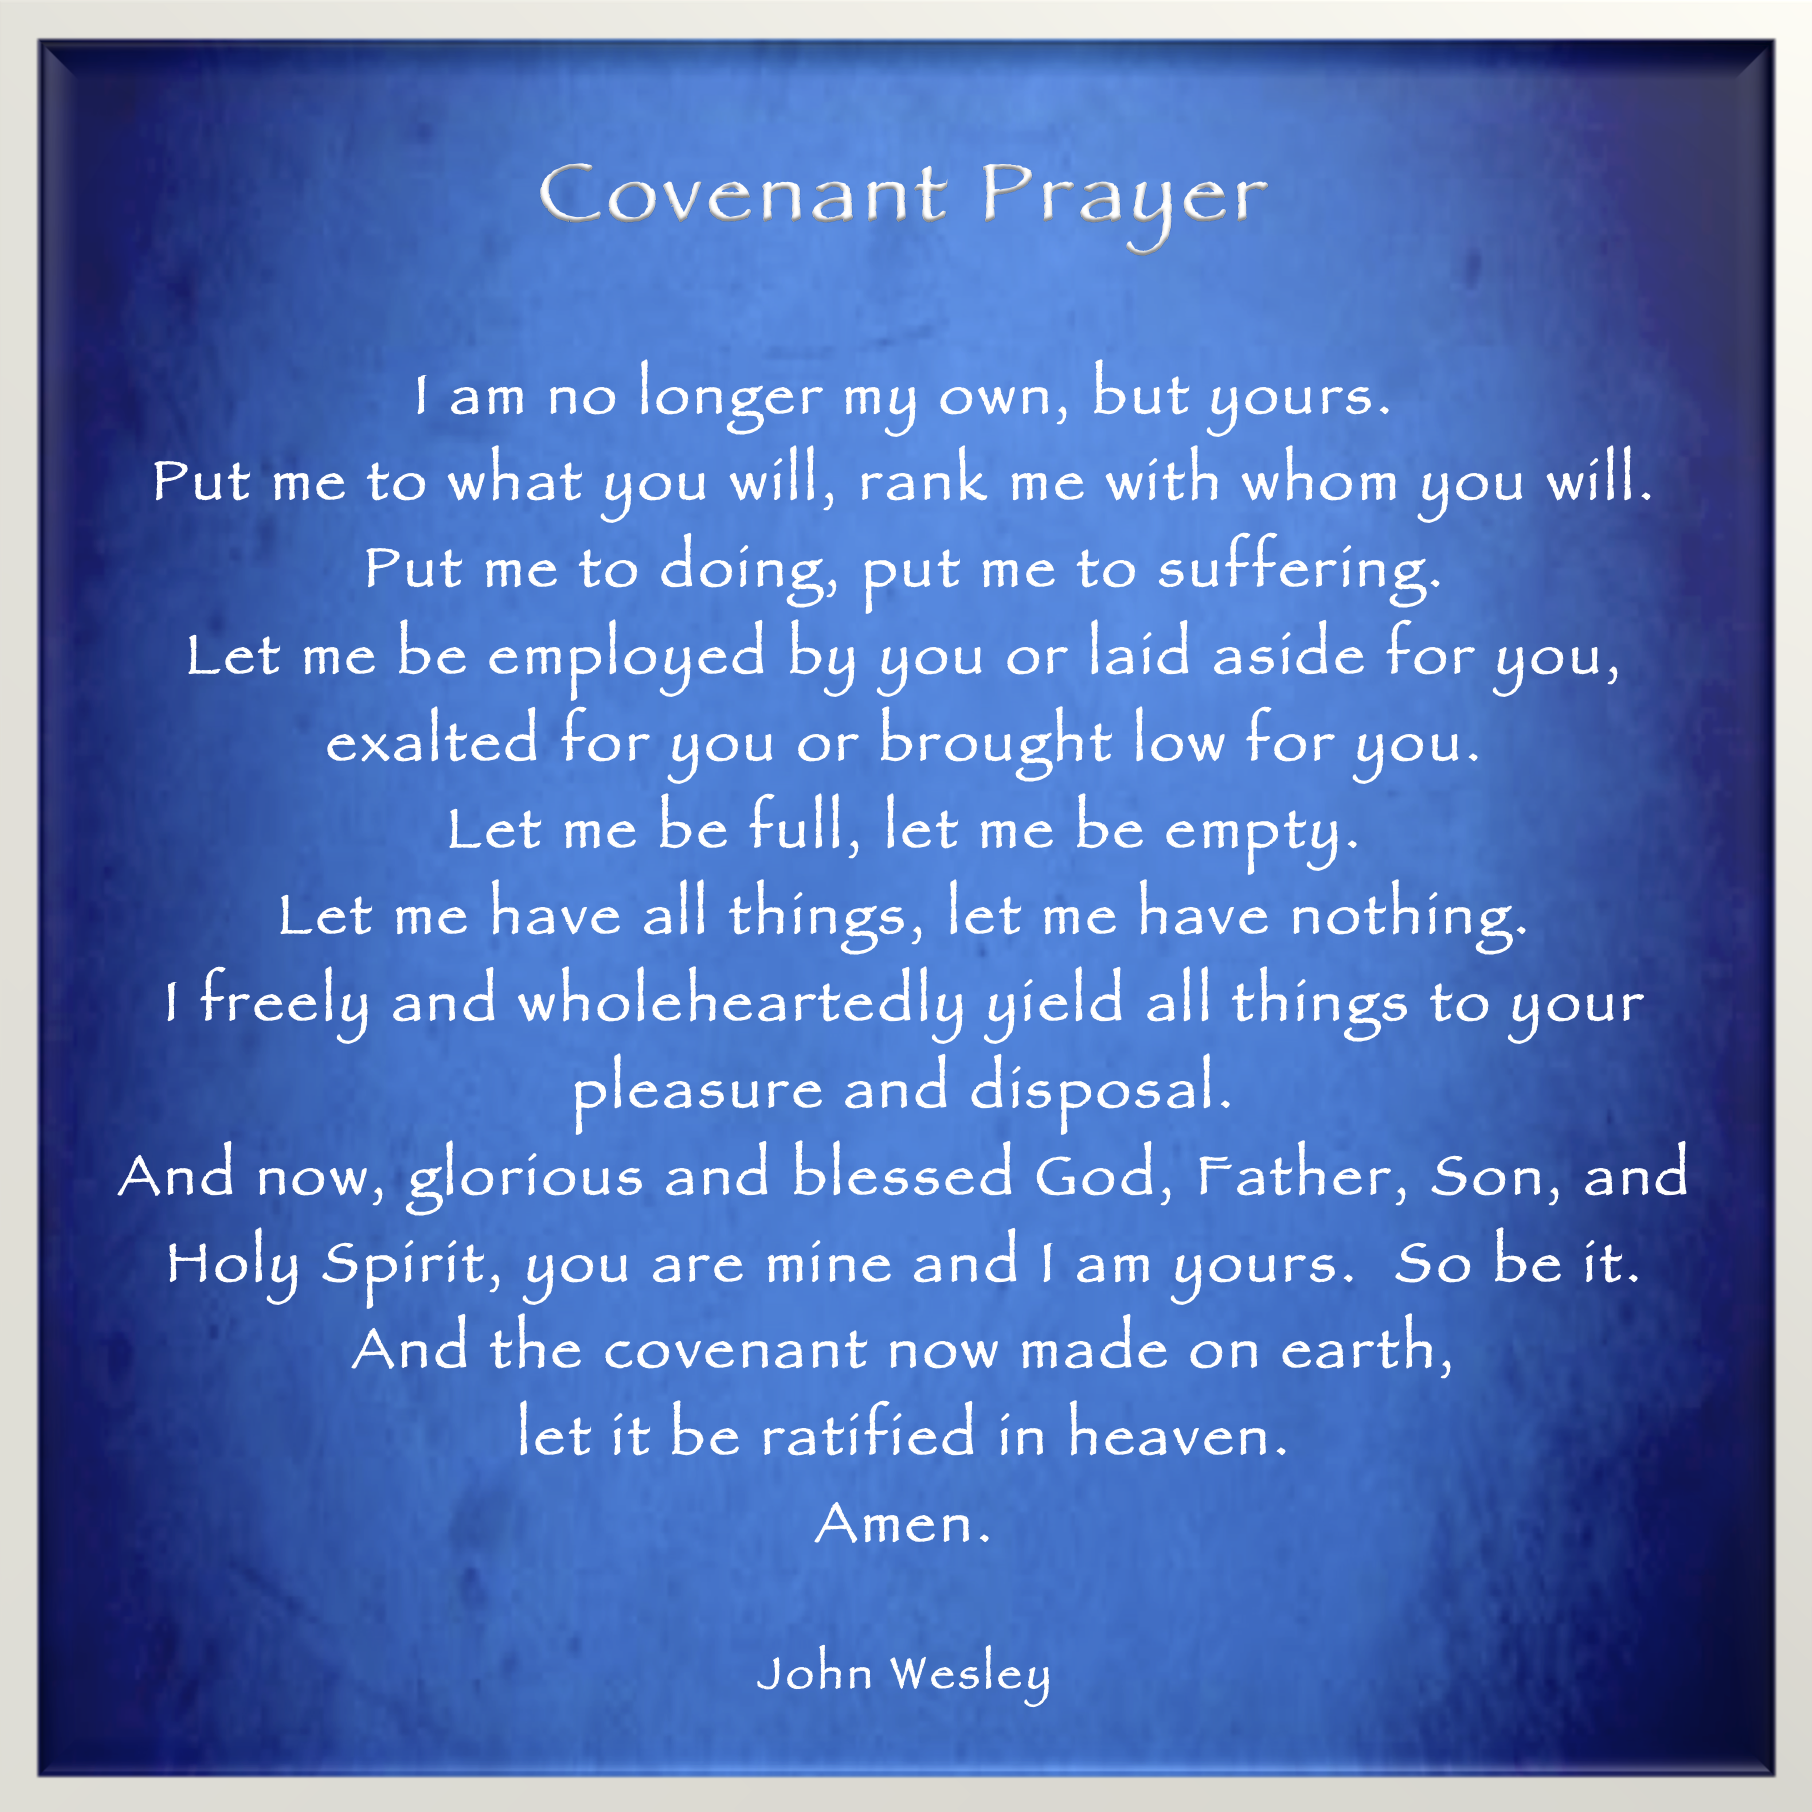 One of the world's most famous prayers    John Wesley